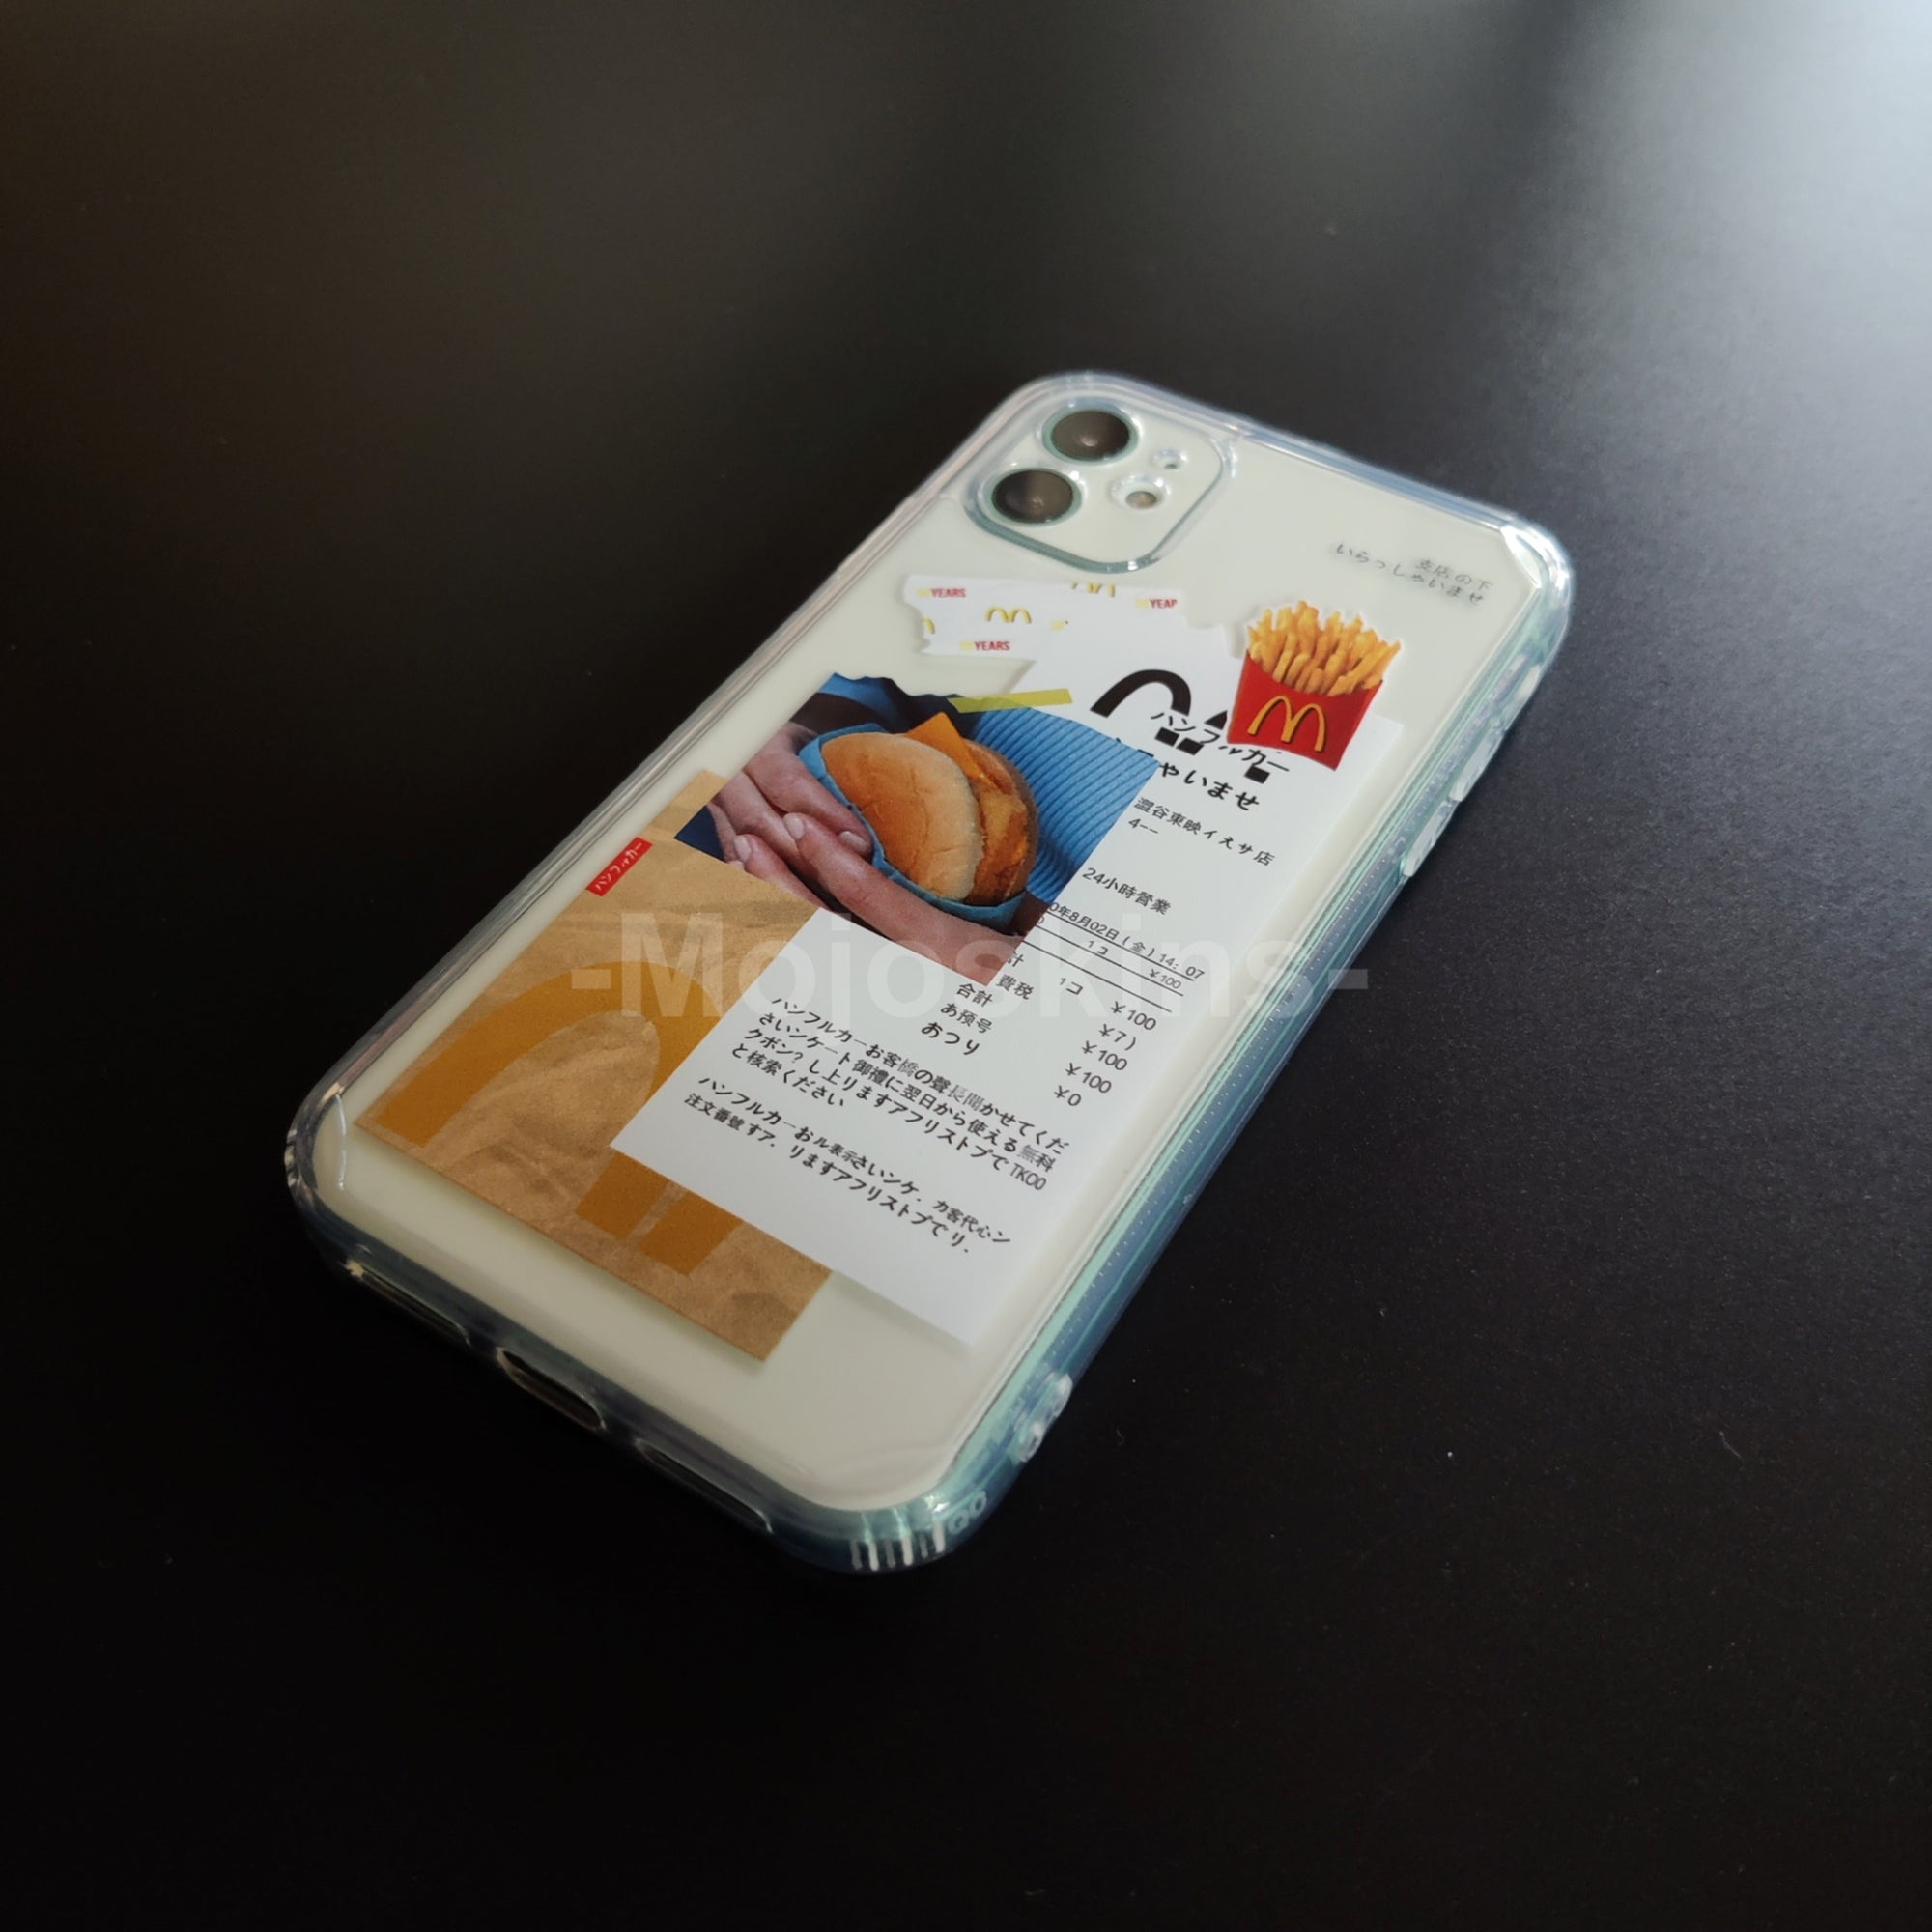 Burger Mcd Iphone Casing